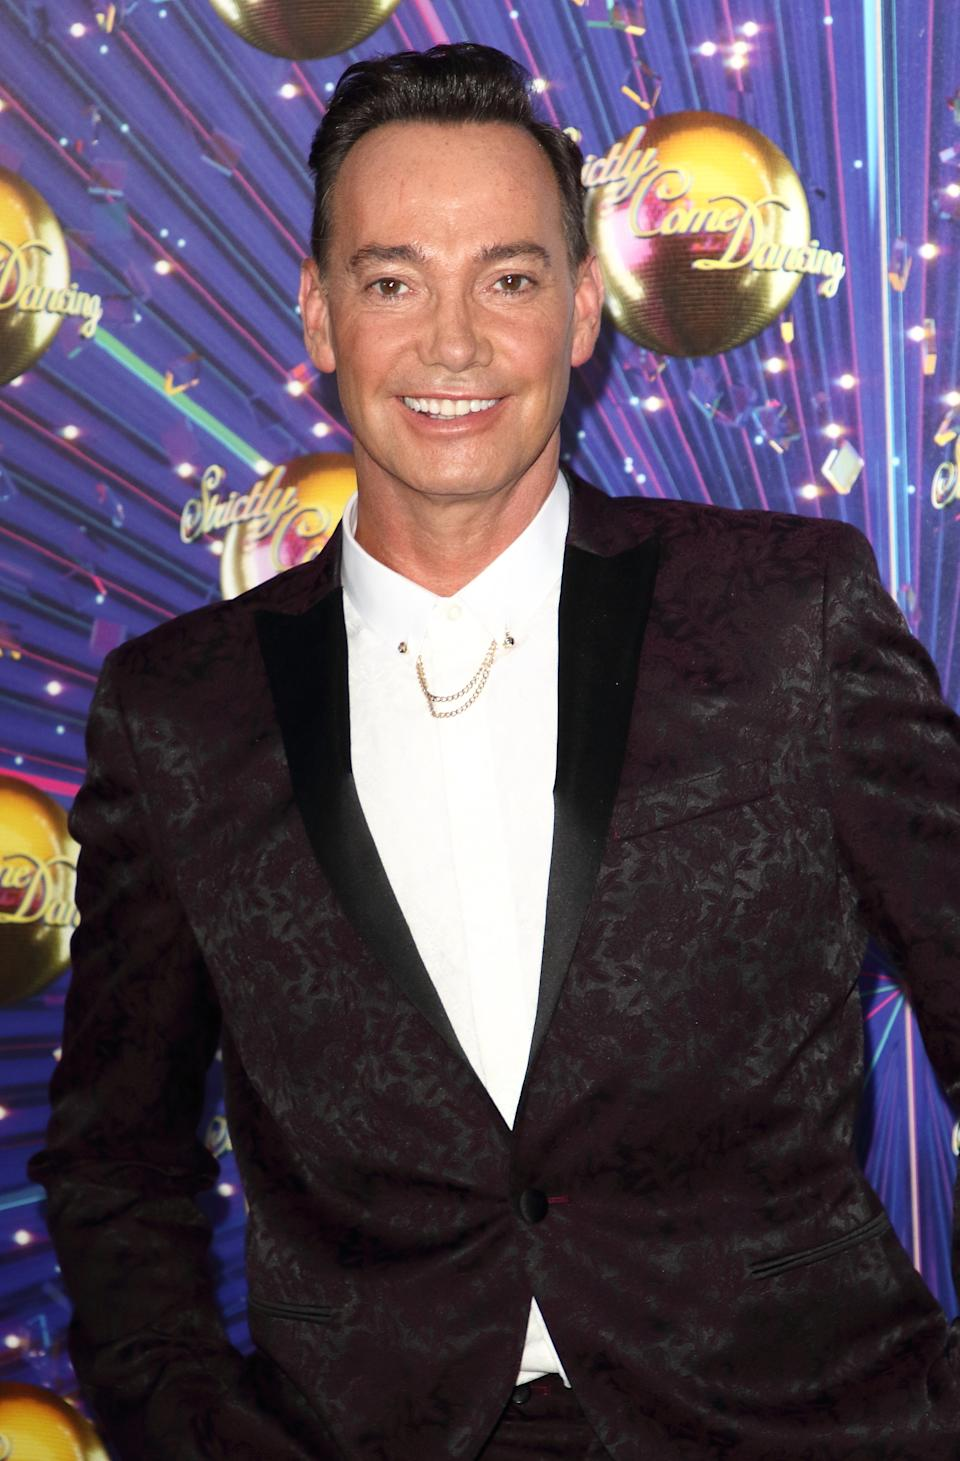 Craig Revel Horwood at the Strictly Come Dancing Launch at BBC Broadcasting House in London. (Photo by Keith Mayhew / SOPA Images/Sipa USA)